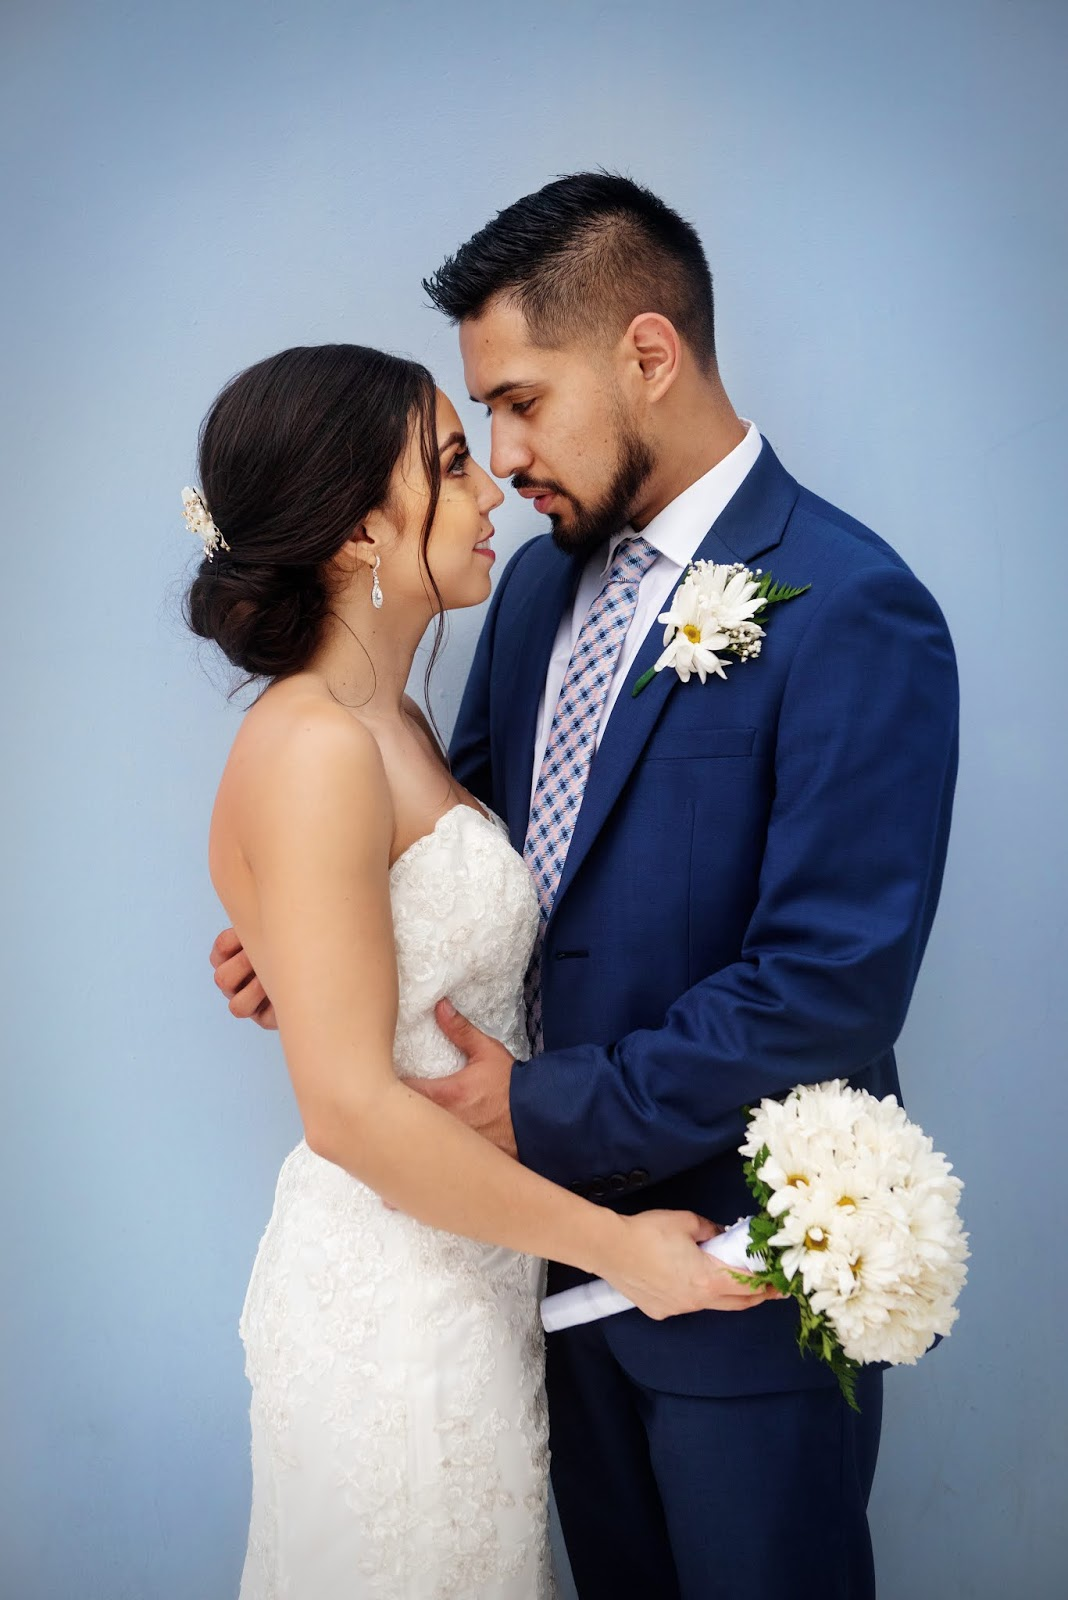 Protecting The Marriage Institution (Part 1 of 3)